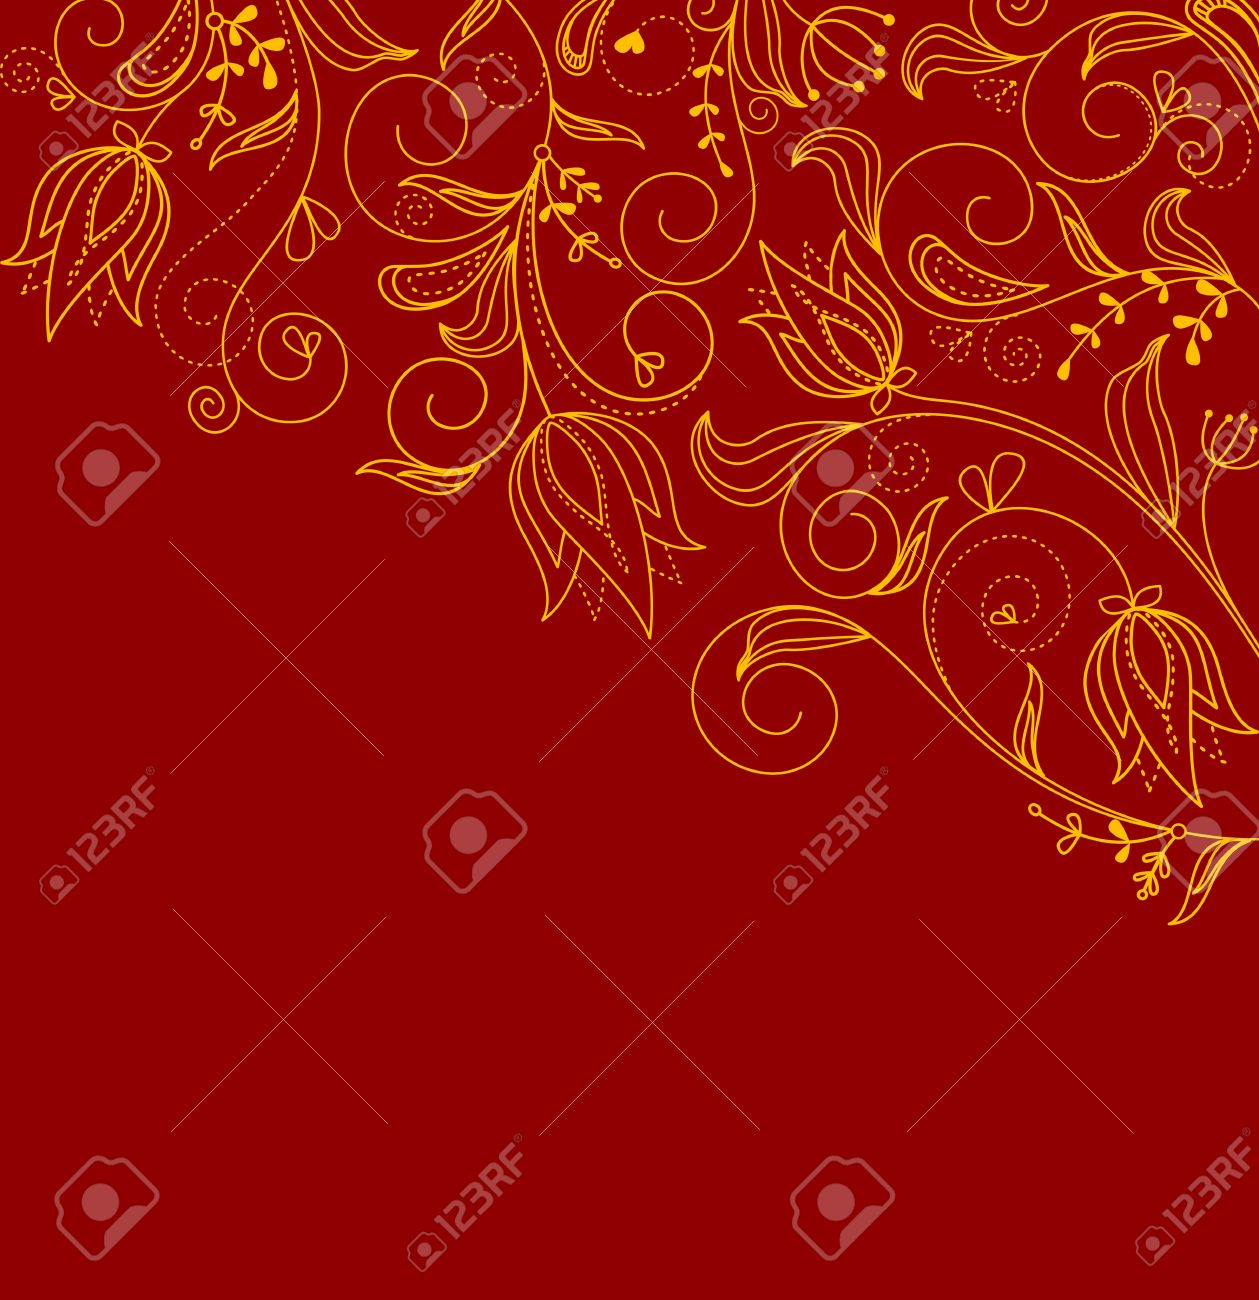 Abstract Floral Background For Invitation Card Design Royalty Free